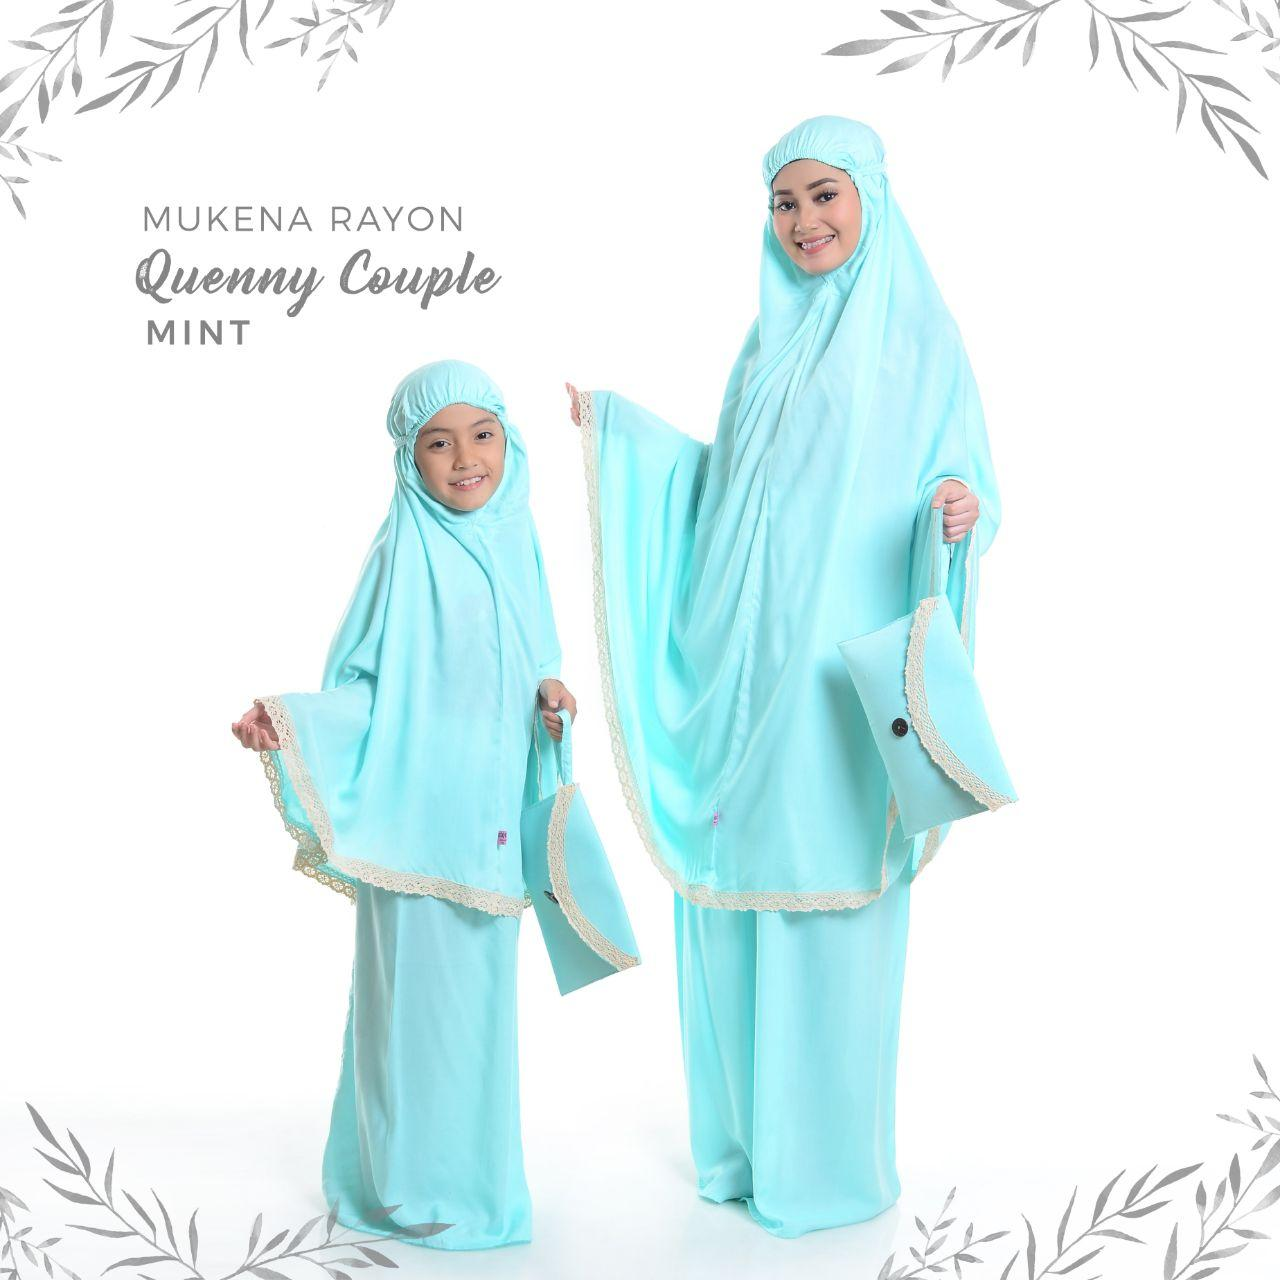 Mukena Rayon Quenny Couple Mint